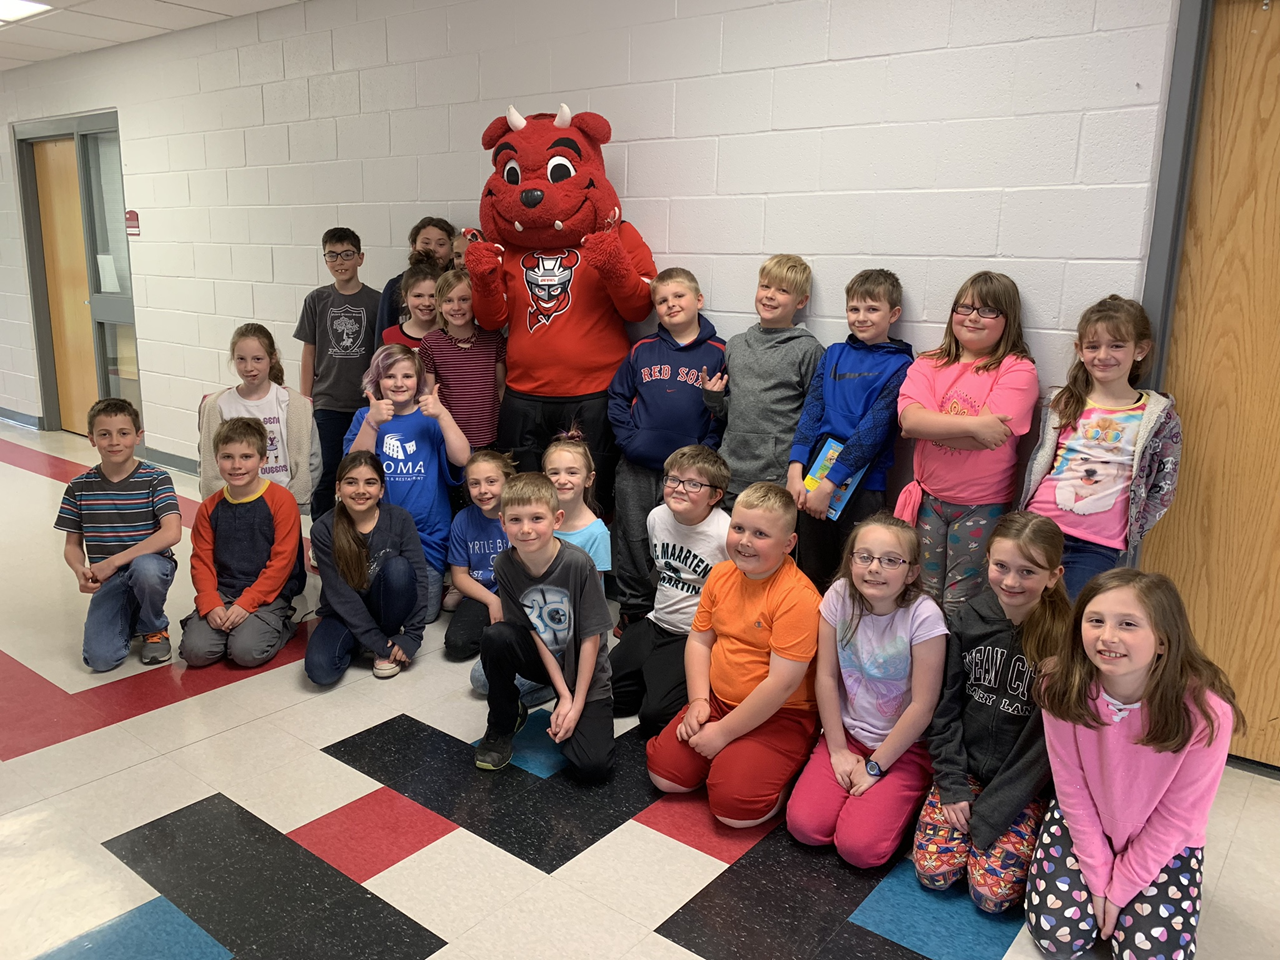 Picture of Binghamton Devils mascot posing with 3rd and 4th grade students